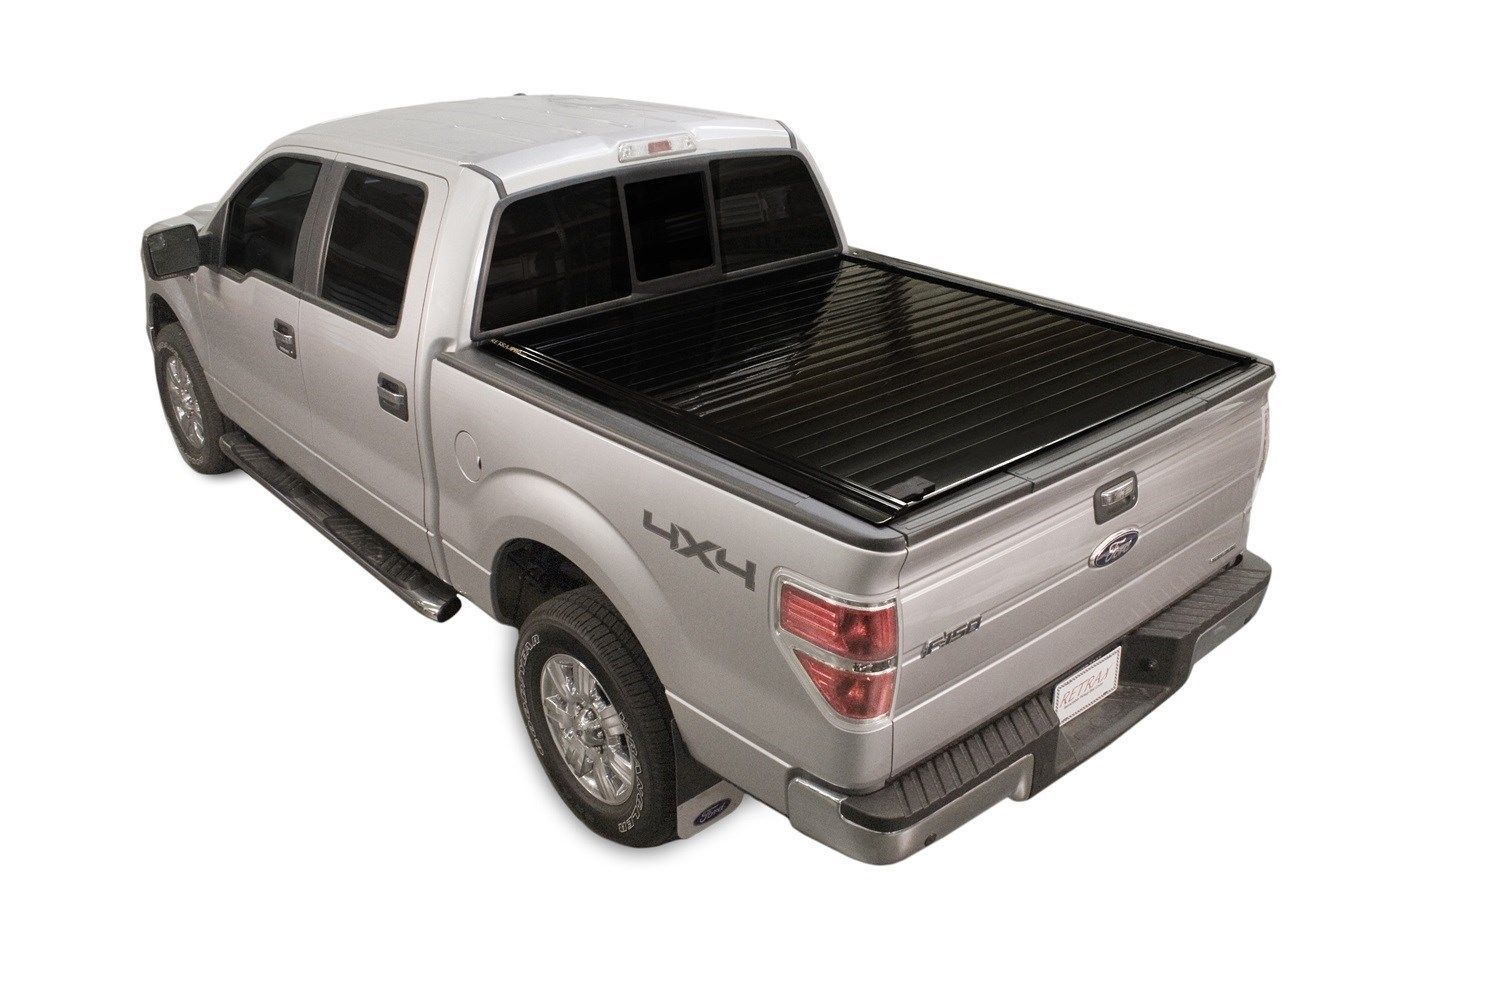 Toyota Tundra Hard Bed Cover Tonneau cover, Retractable